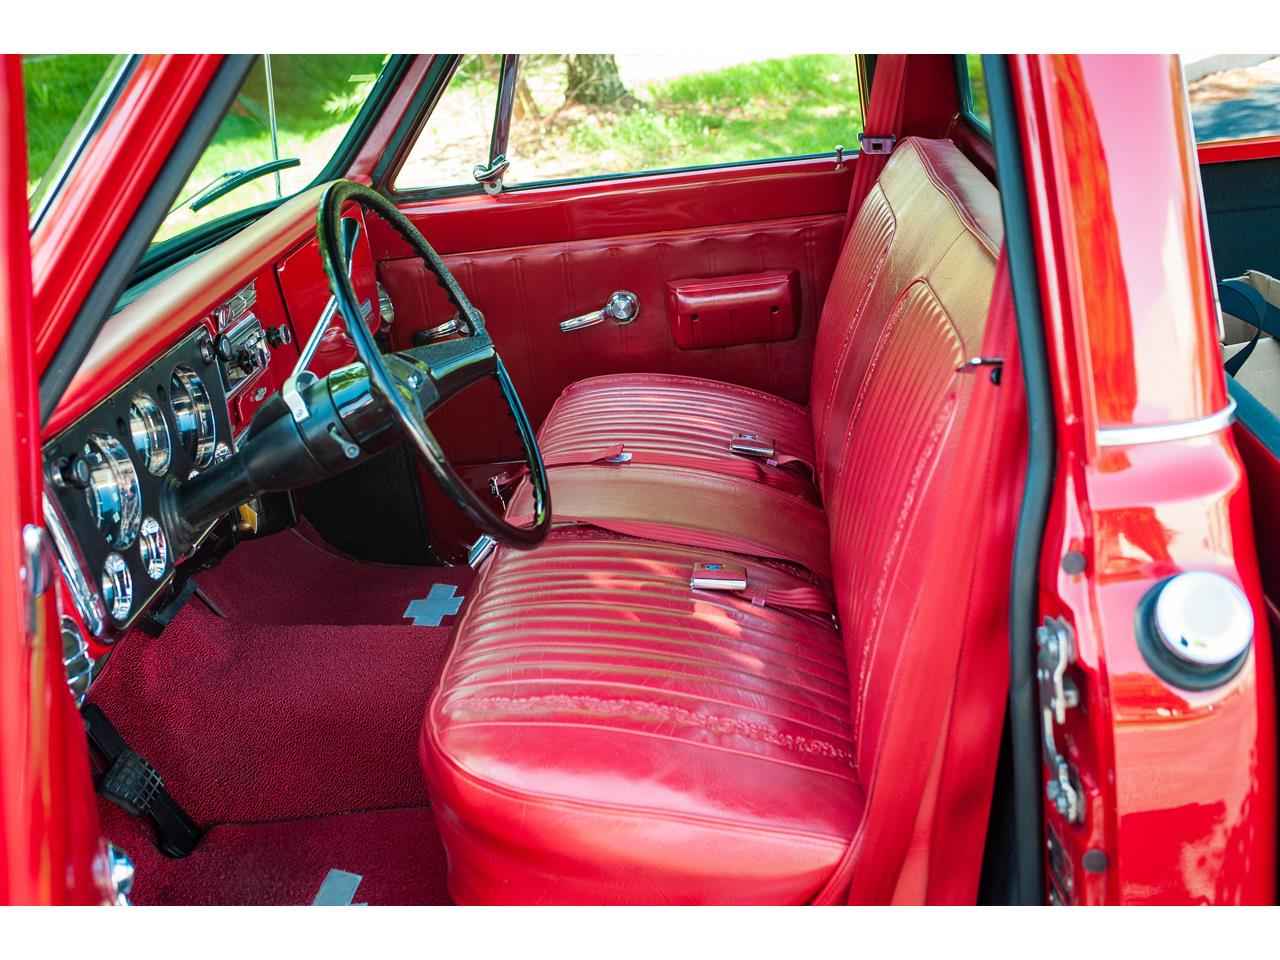 Large Picture of 1969 Chevrolet C10 located in O'Fallon Illinois - $44,500.00 Offered by Gateway Classic Cars - St. Louis - QB8I